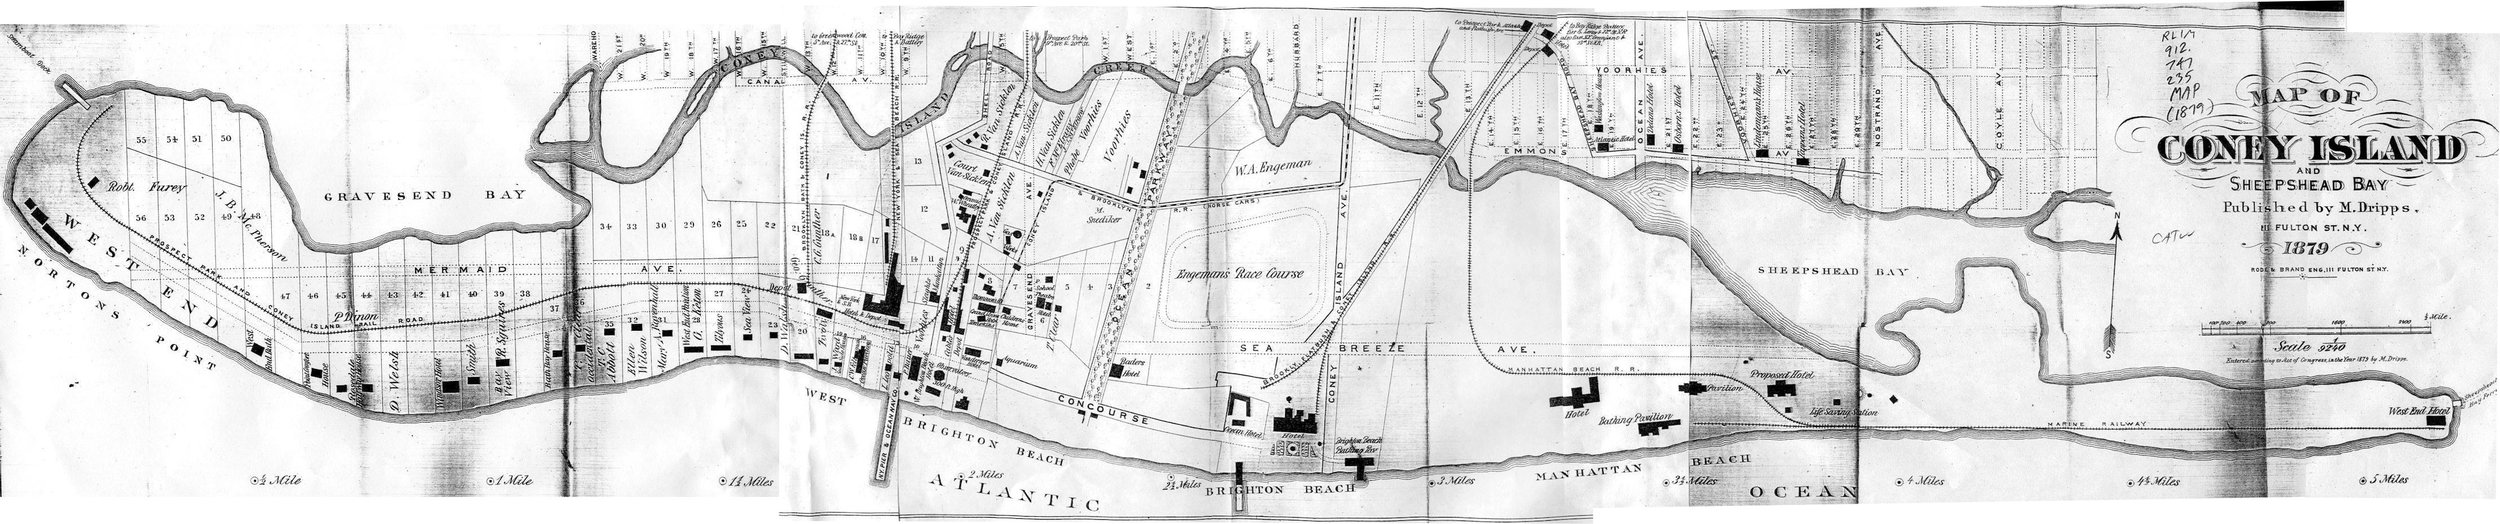 Map of Coney Island, 1879. Note the buildings tended to be built close to the edge of the Atlantic Ocean and clustered around the train station.